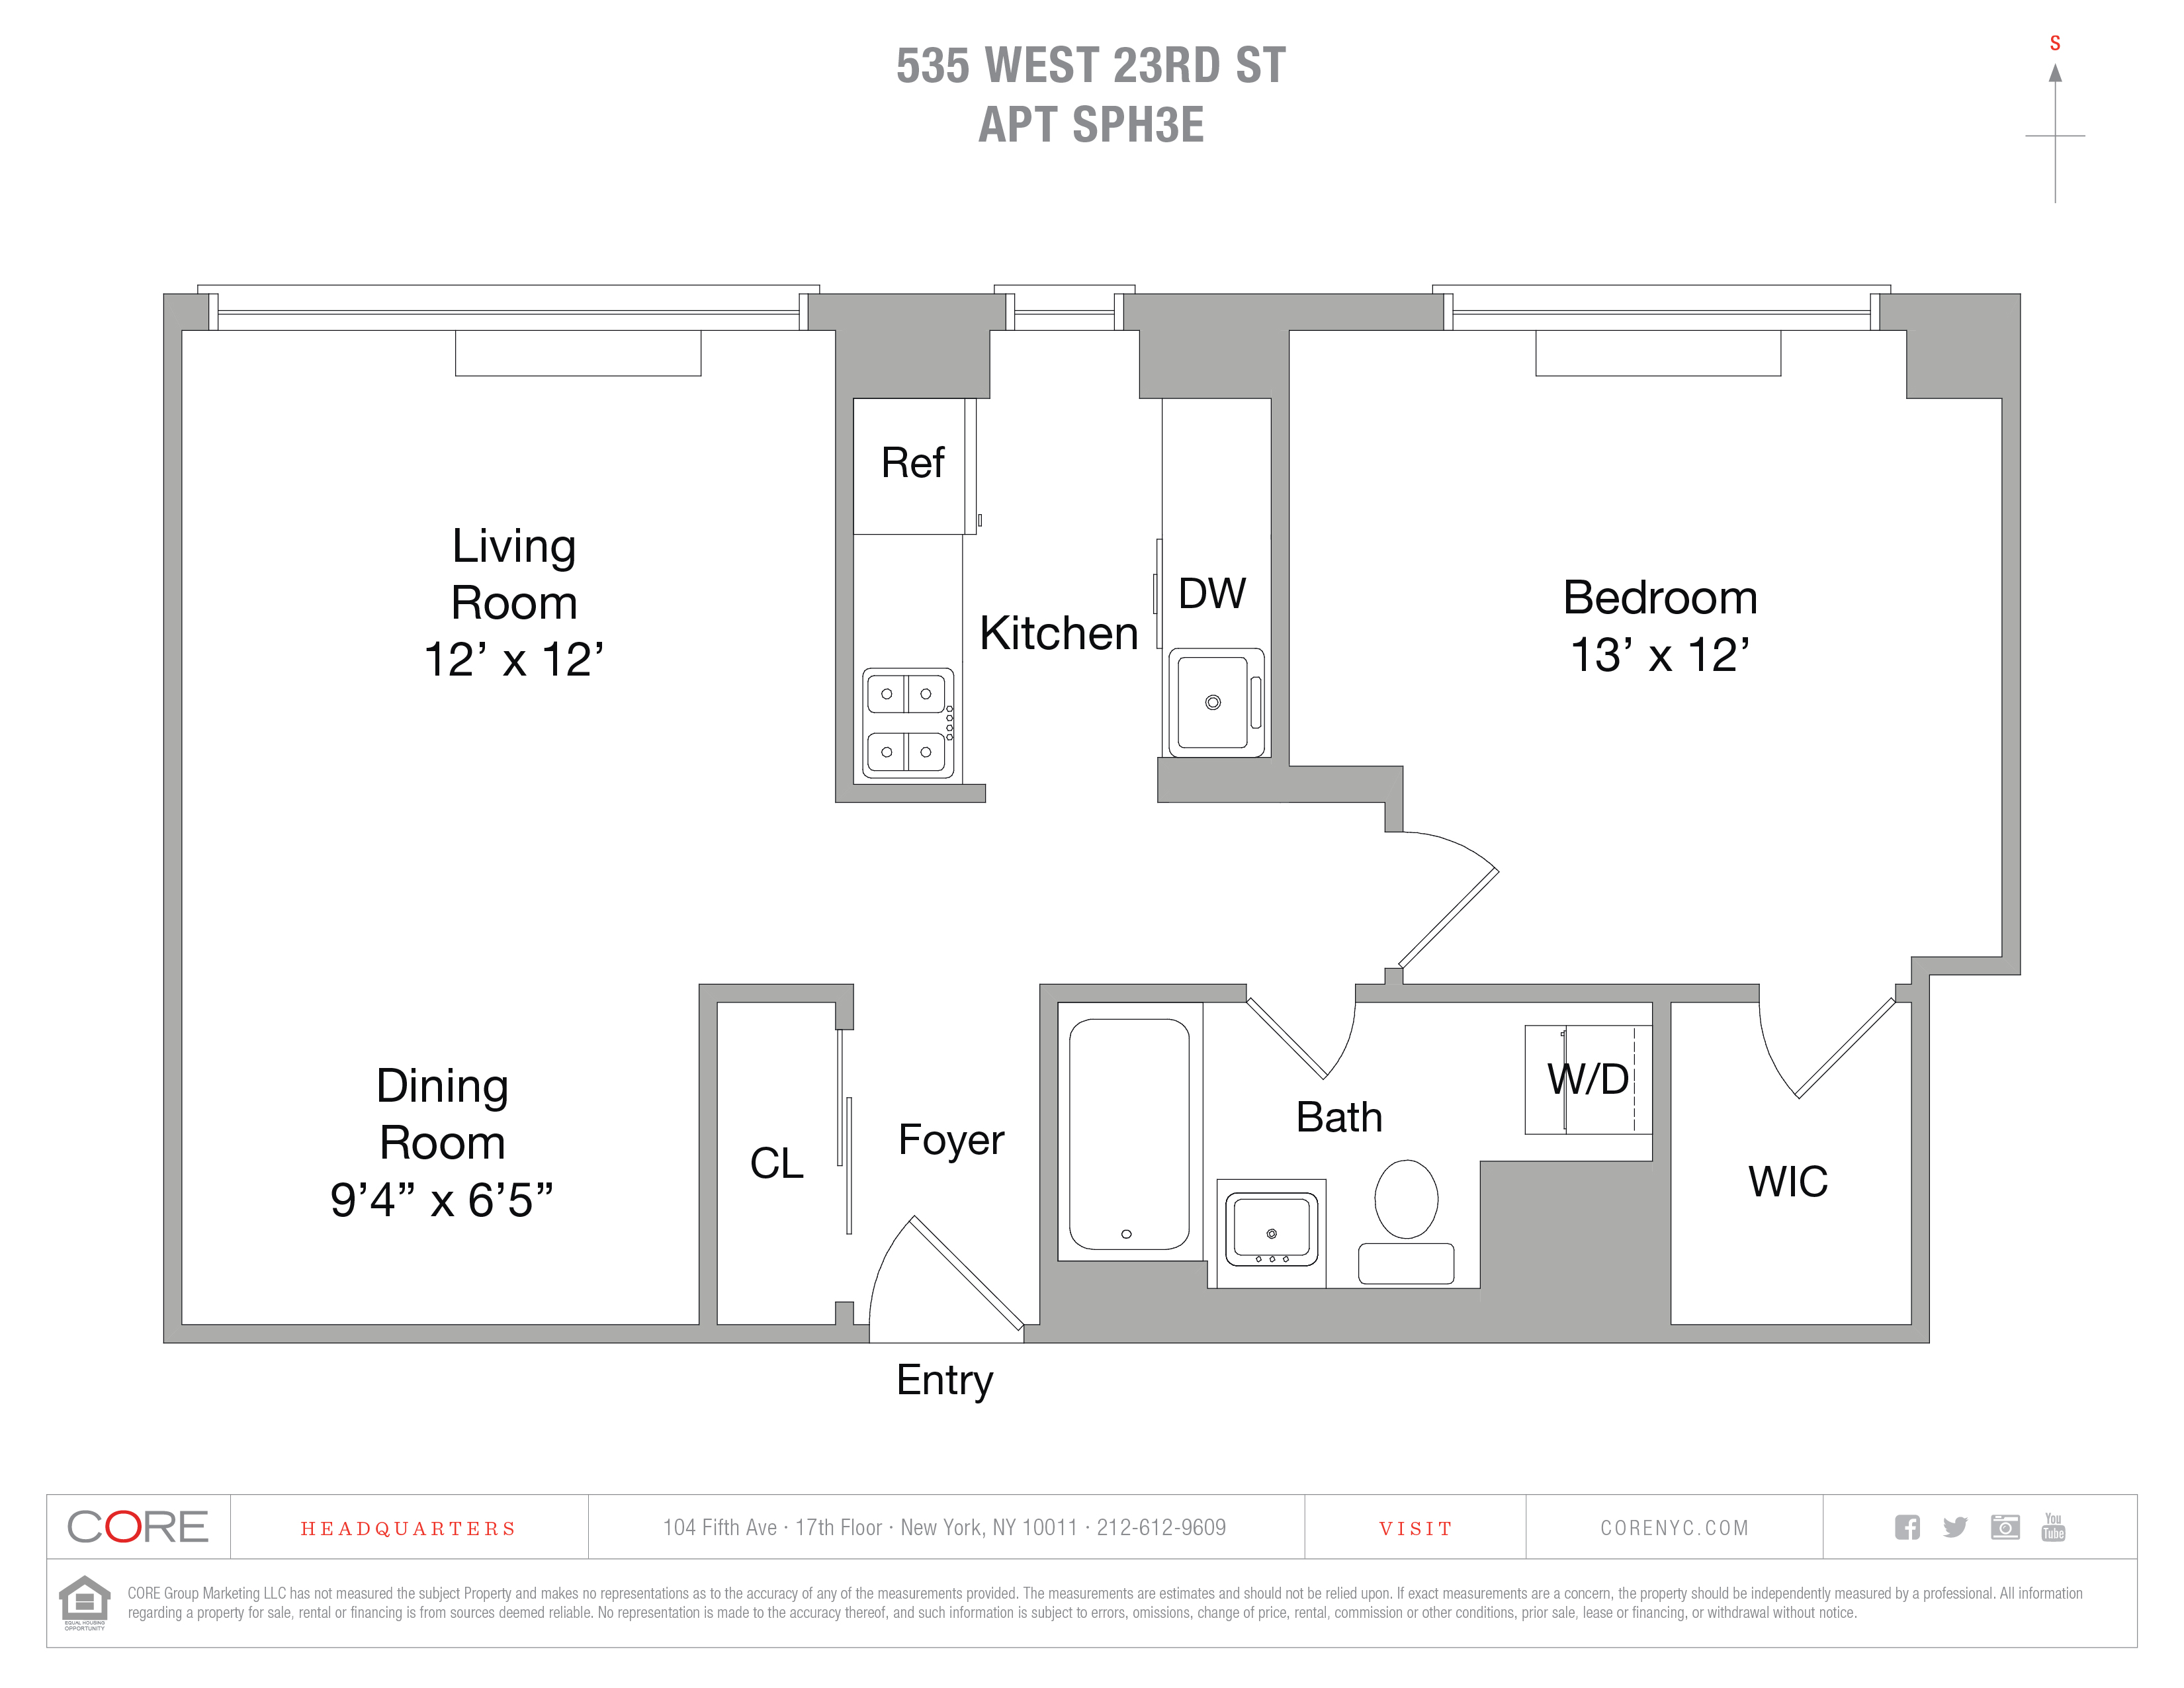 535 West 23rd St. SPH3E, New York, NY 10011